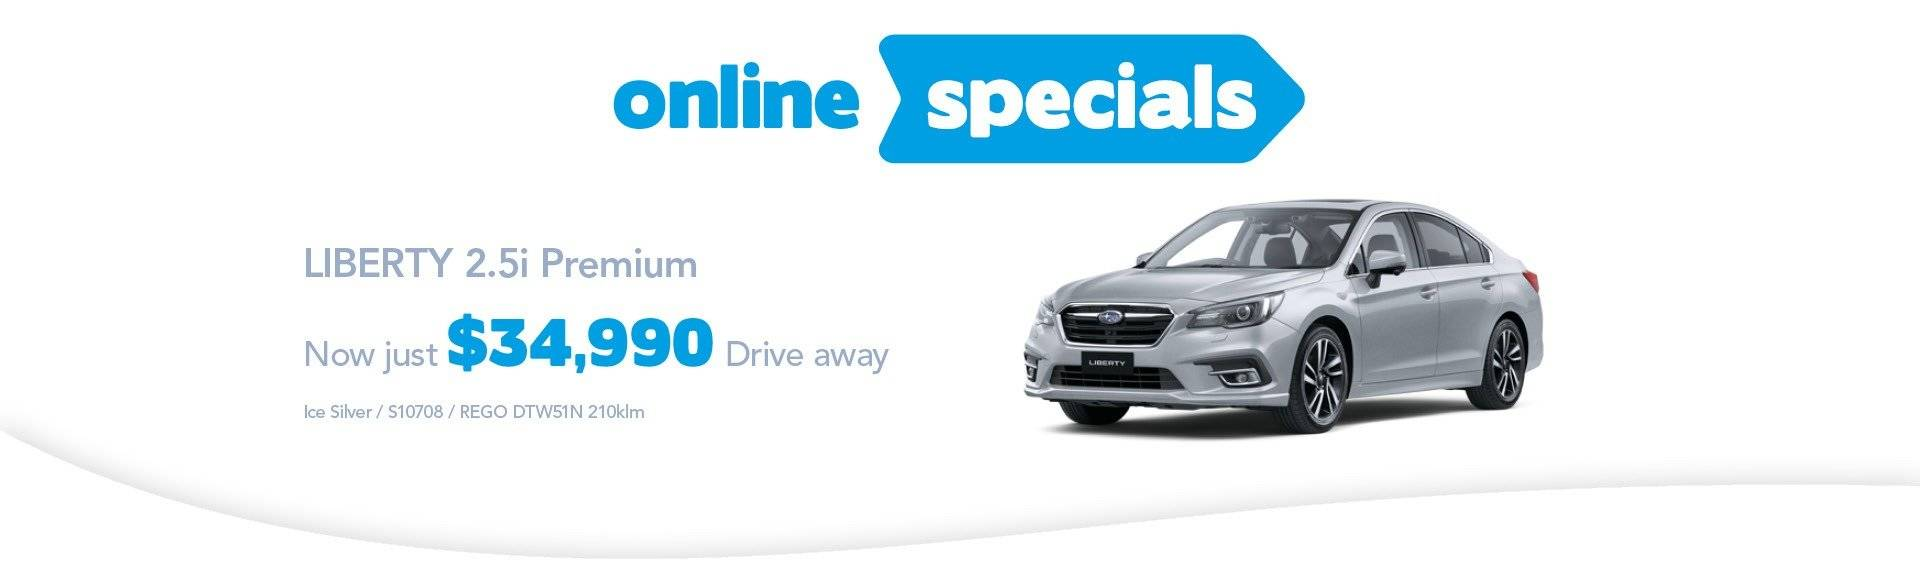 Hunter Subaru Online Specials